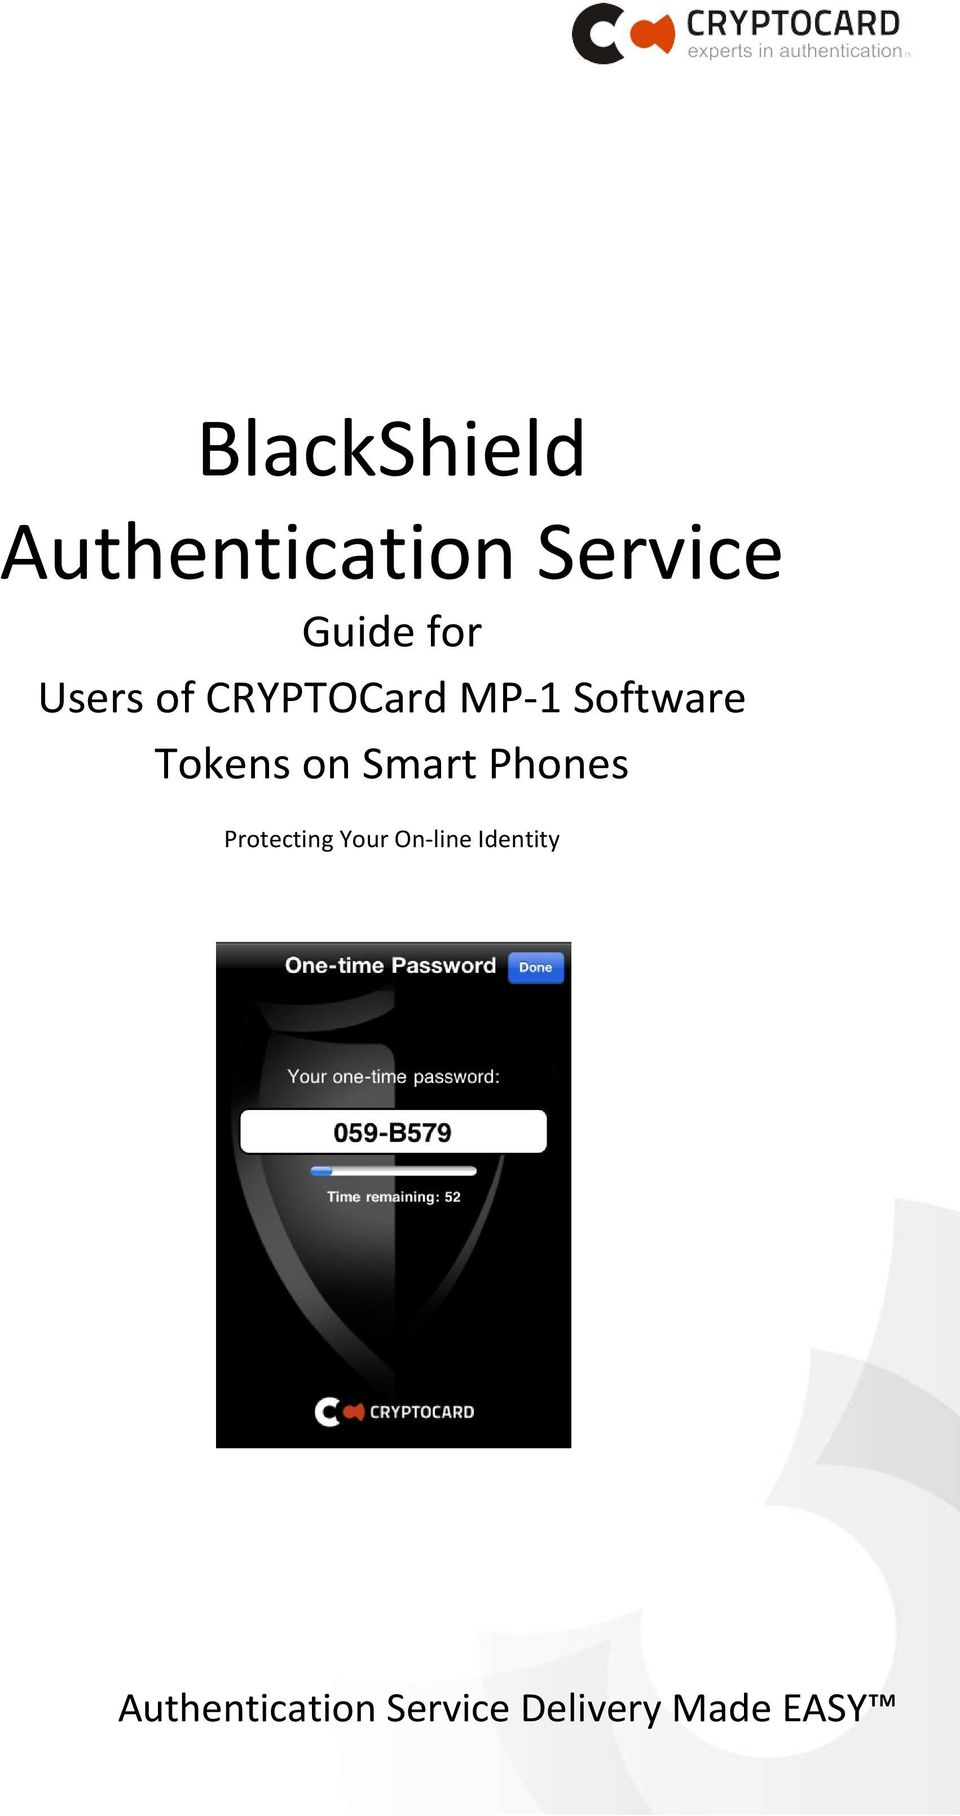 Tokens on Smart Phones Protecting Your